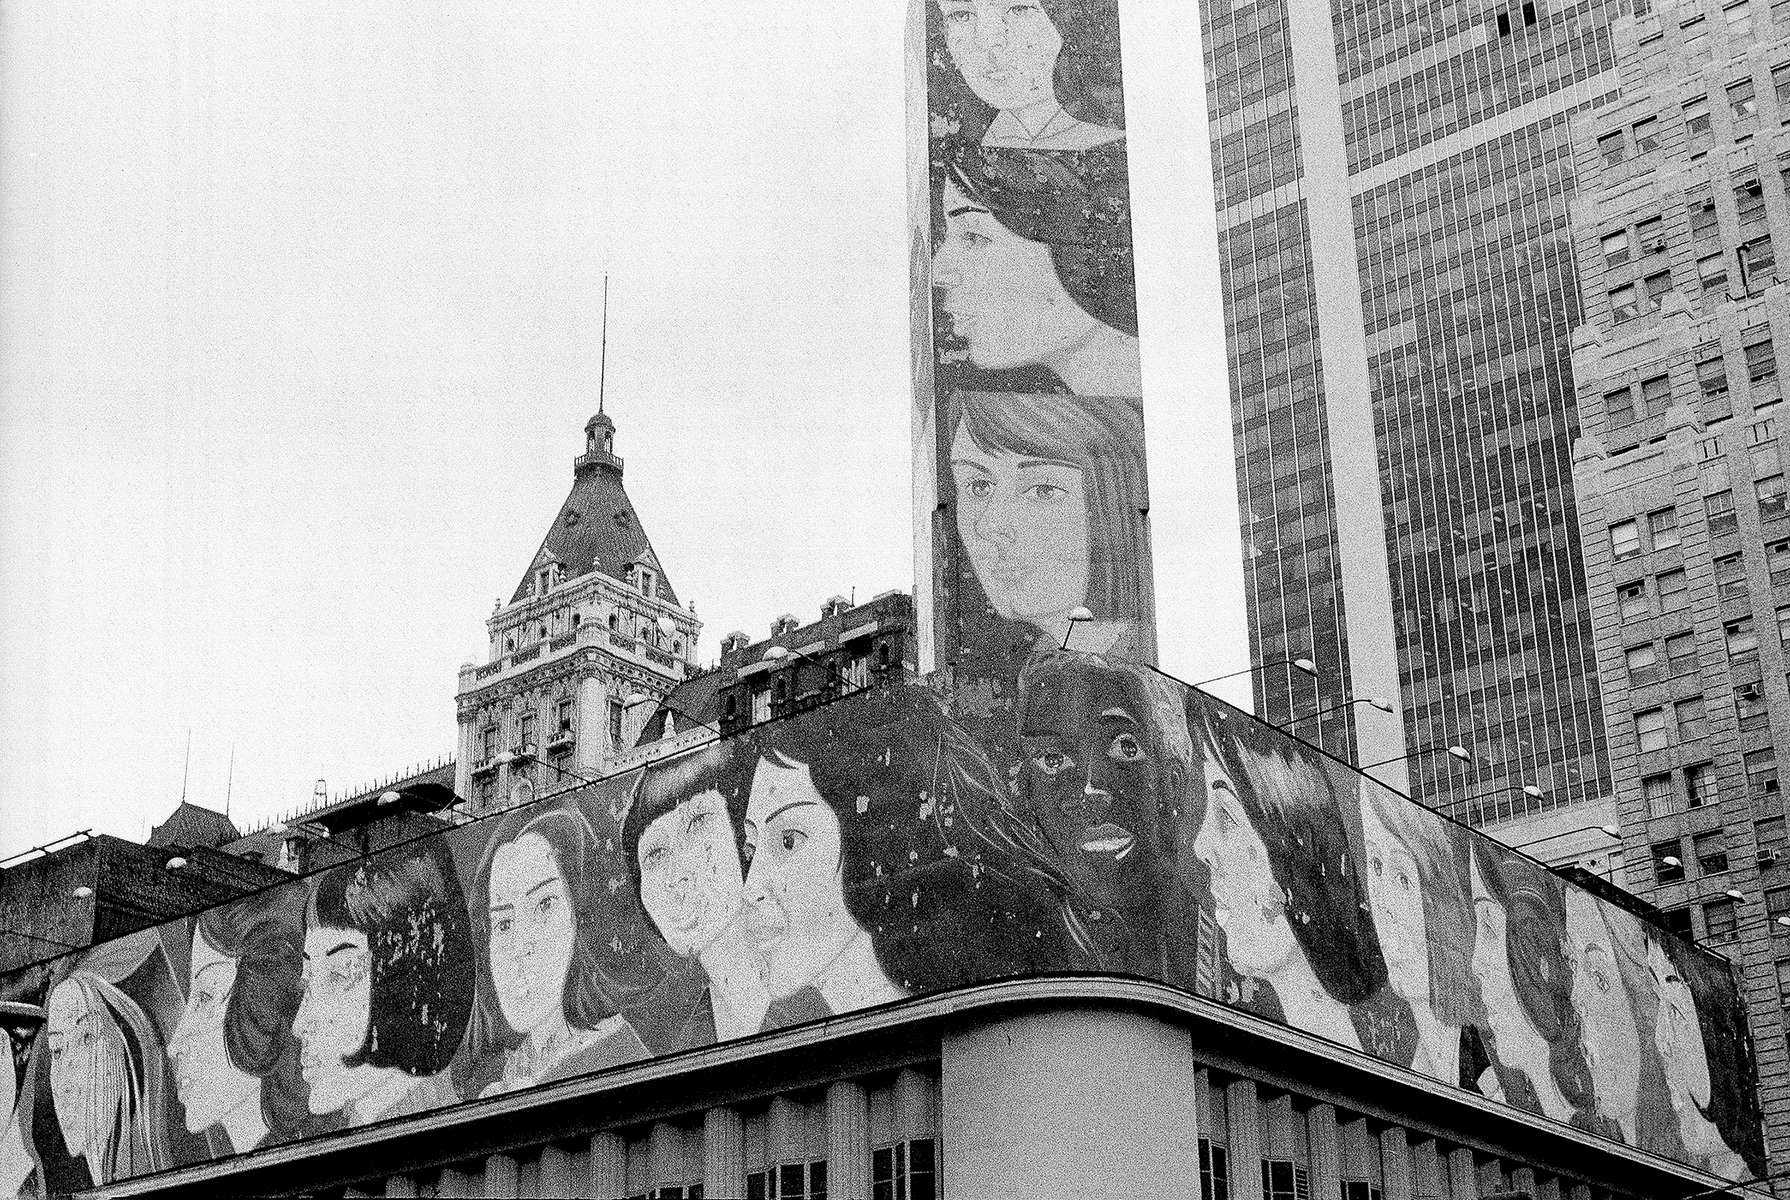 from Top Stories #9: N.Y.C. in 1979  by Kathy Acker'Nine Women' by Alex Katz,The Public Art Fund, 1977-1982